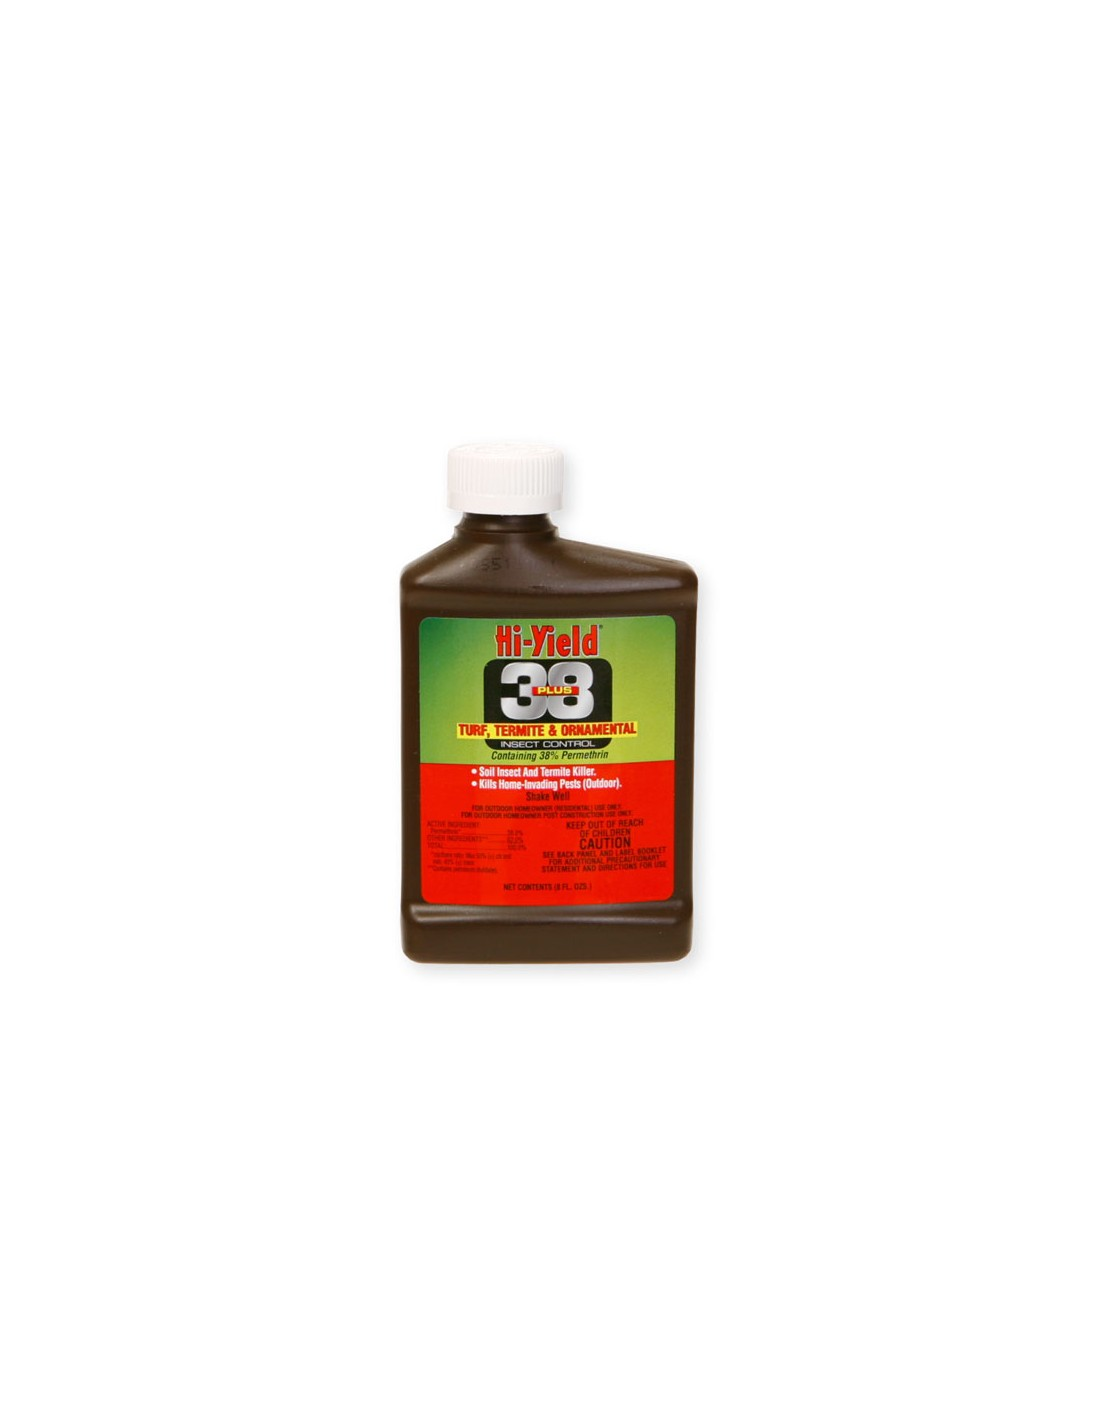 is Hi-Yield 38 safe to use in yards where dogs are present